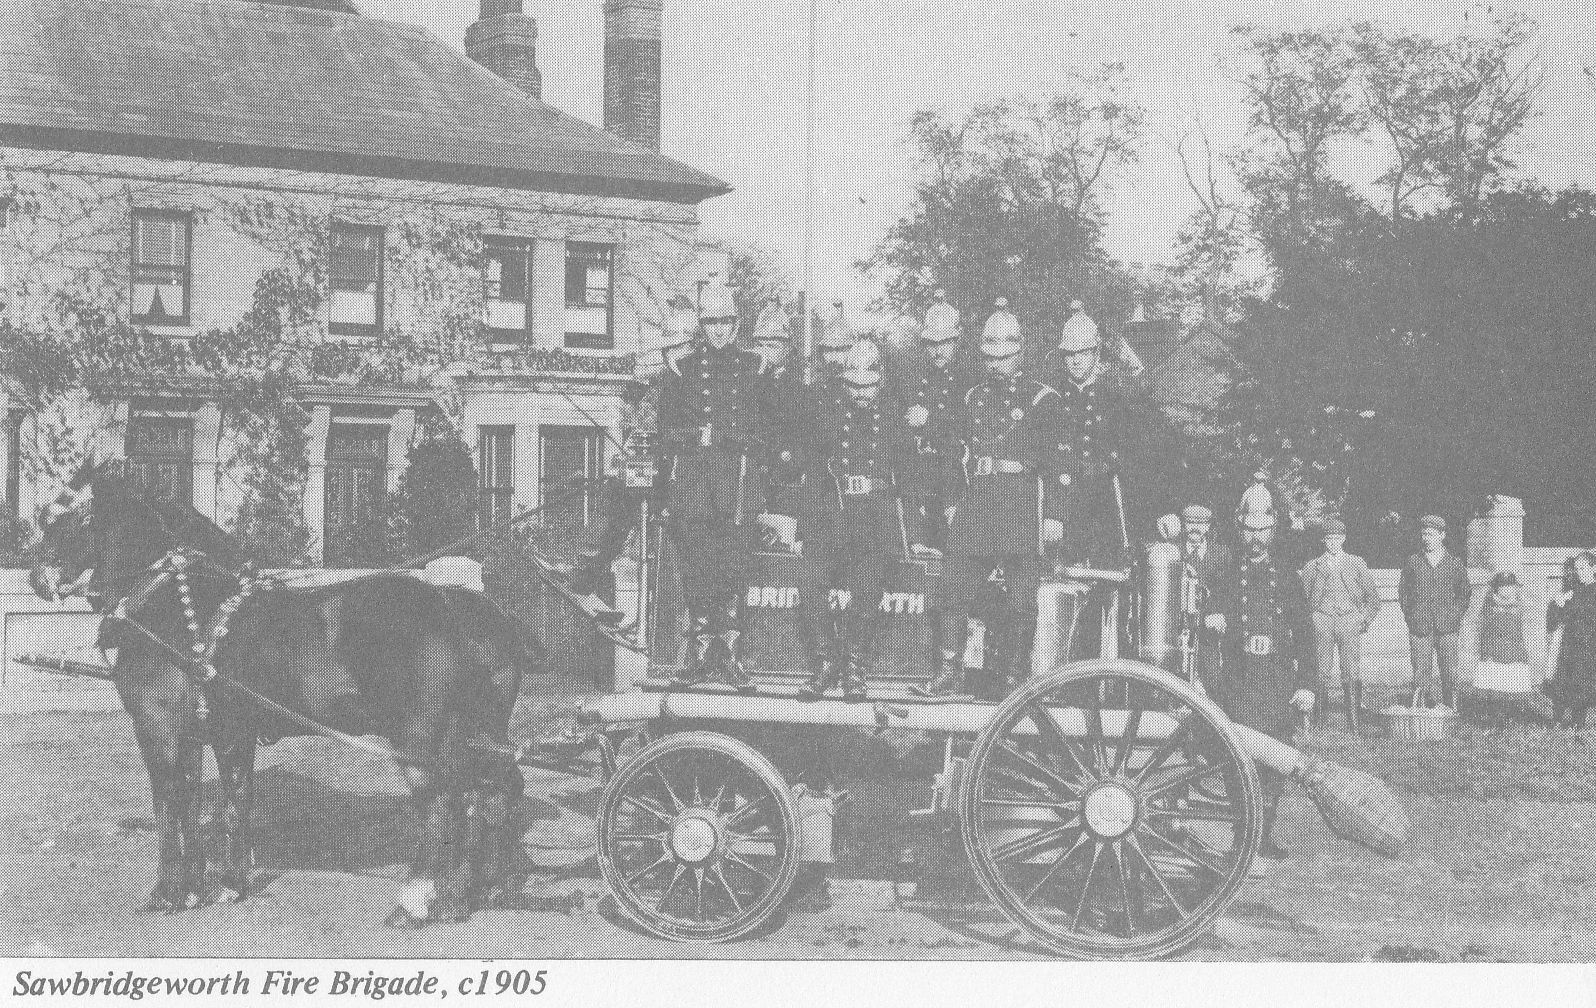 Sawbridgeworth Fire Brigade in 1905